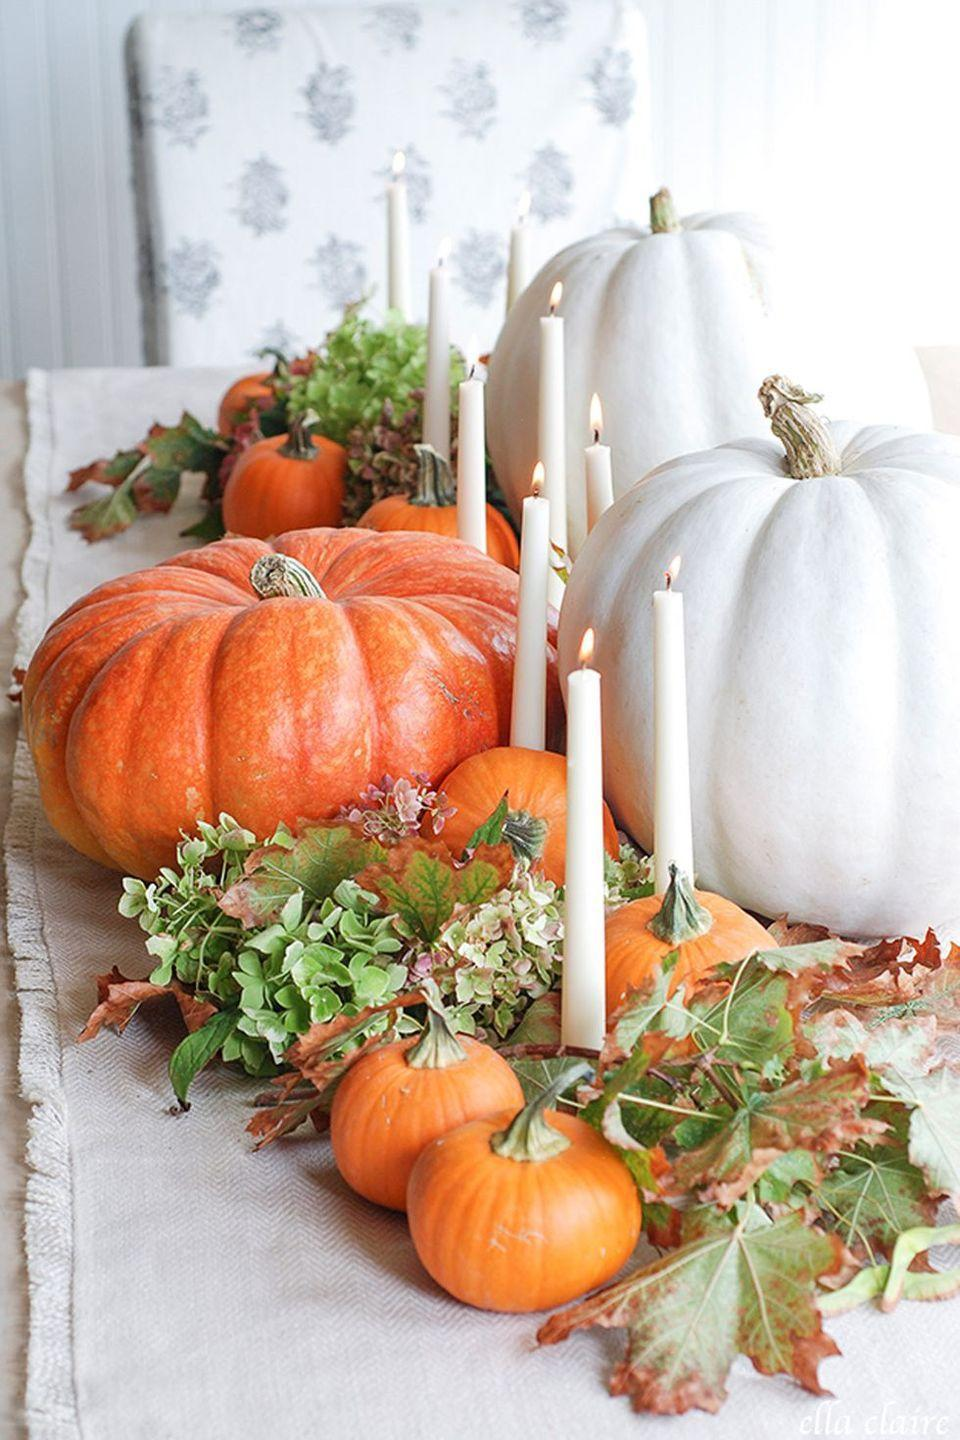 """<p>Can't decide on a color scheme? Give yourself the best of both worlds with this neat centerpiece idea, which brings together a neutral runner, white taper candles, and a dash of bold color.</p><p><strong>Get the tutorial at <a href=""""http://www.ellaclaireinspired.com/fall-2015-home-tour/"""" rel=""""nofollow noopener"""" target=""""_blank"""" data-ylk=""""slk:Ella Claire"""" class=""""link rapid-noclick-resp"""">Ella Claire</a>.</strong></p><p><strong><a class=""""link rapid-noclick-resp"""" href=""""https://www.amazon.com/Factory-Direct-Craft-Artificial-Decorating/dp/B075WXYV5K?tag=syn-yahoo-20&ascsubtag=%5Bartid%7C10050.g.2130%5Bsrc%7Cyahoo-us"""" rel=""""nofollow noopener"""" target=""""_blank"""" data-ylk=""""slk:SHOP FAUX PUMPKINS"""">SHOP FAUX PUMPKINS</a><br></strong></p>"""